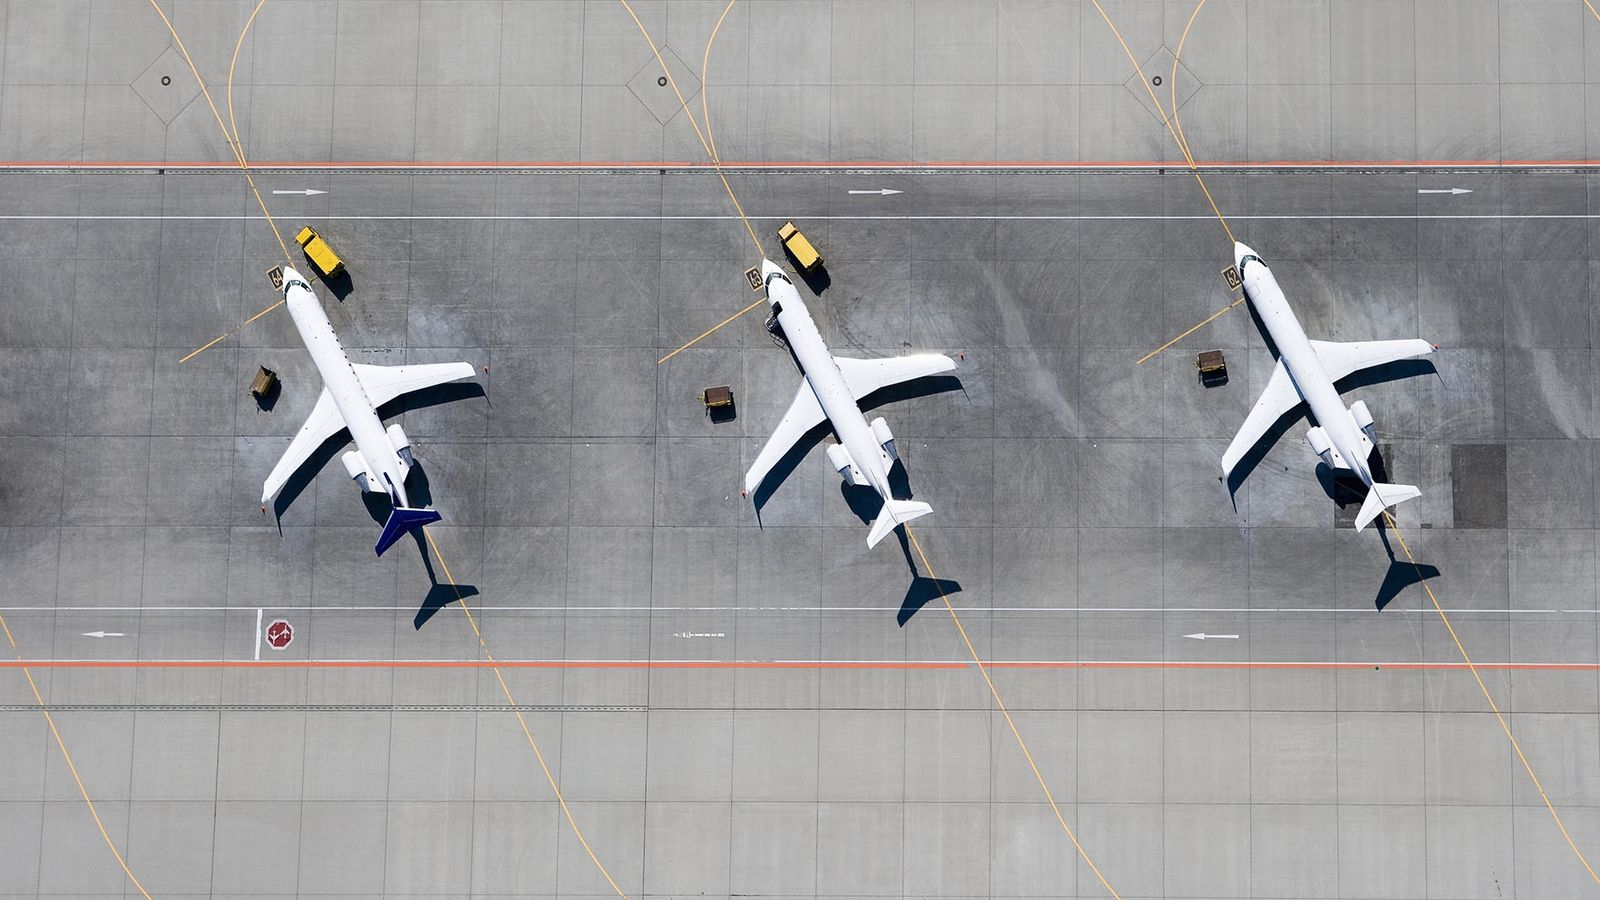 Grounded airplanes.